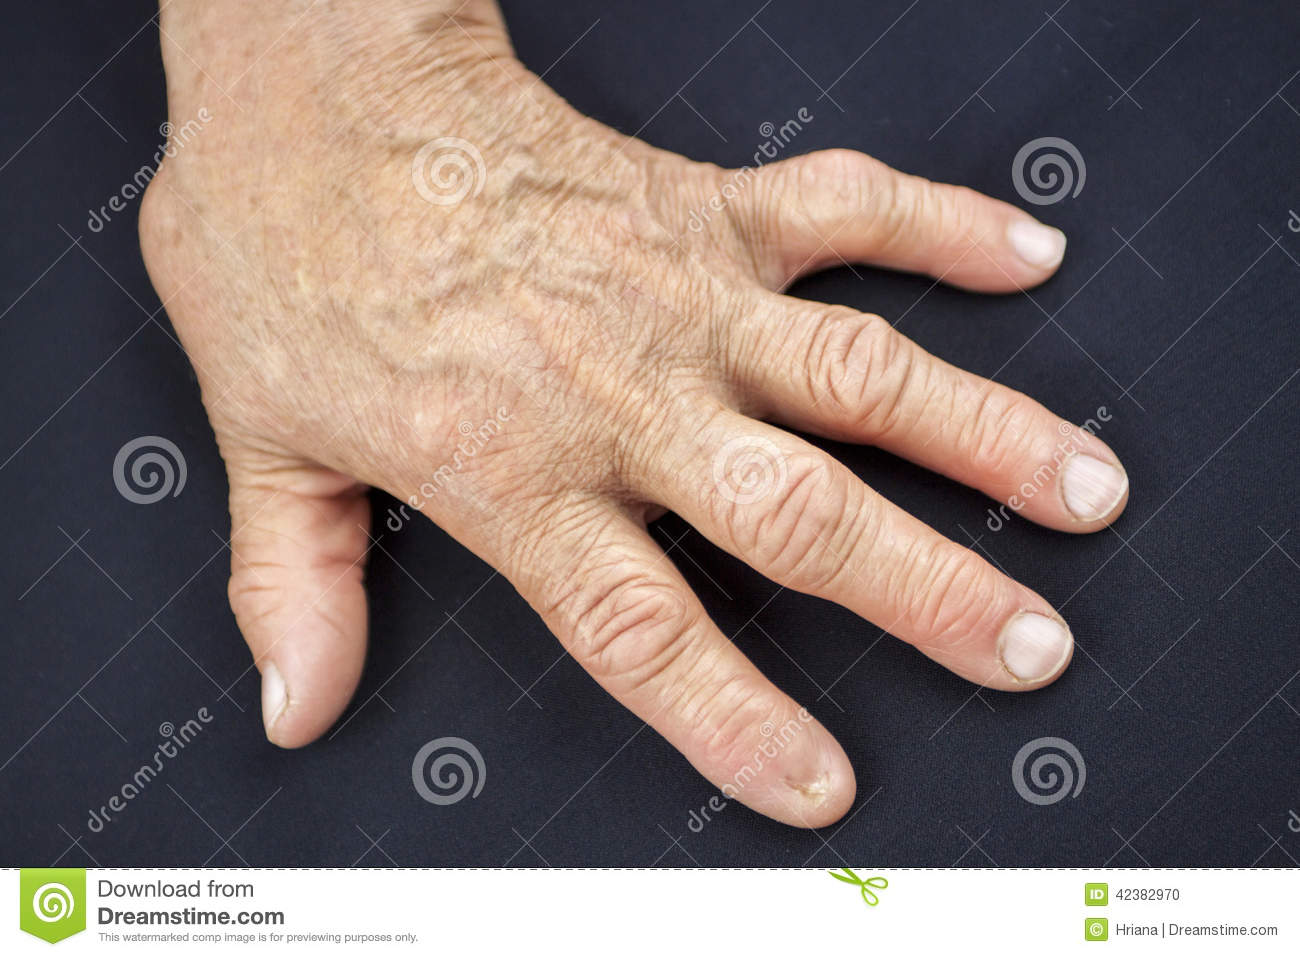 Finger without nail stock photo. Image of abnormal, adult - 42382970